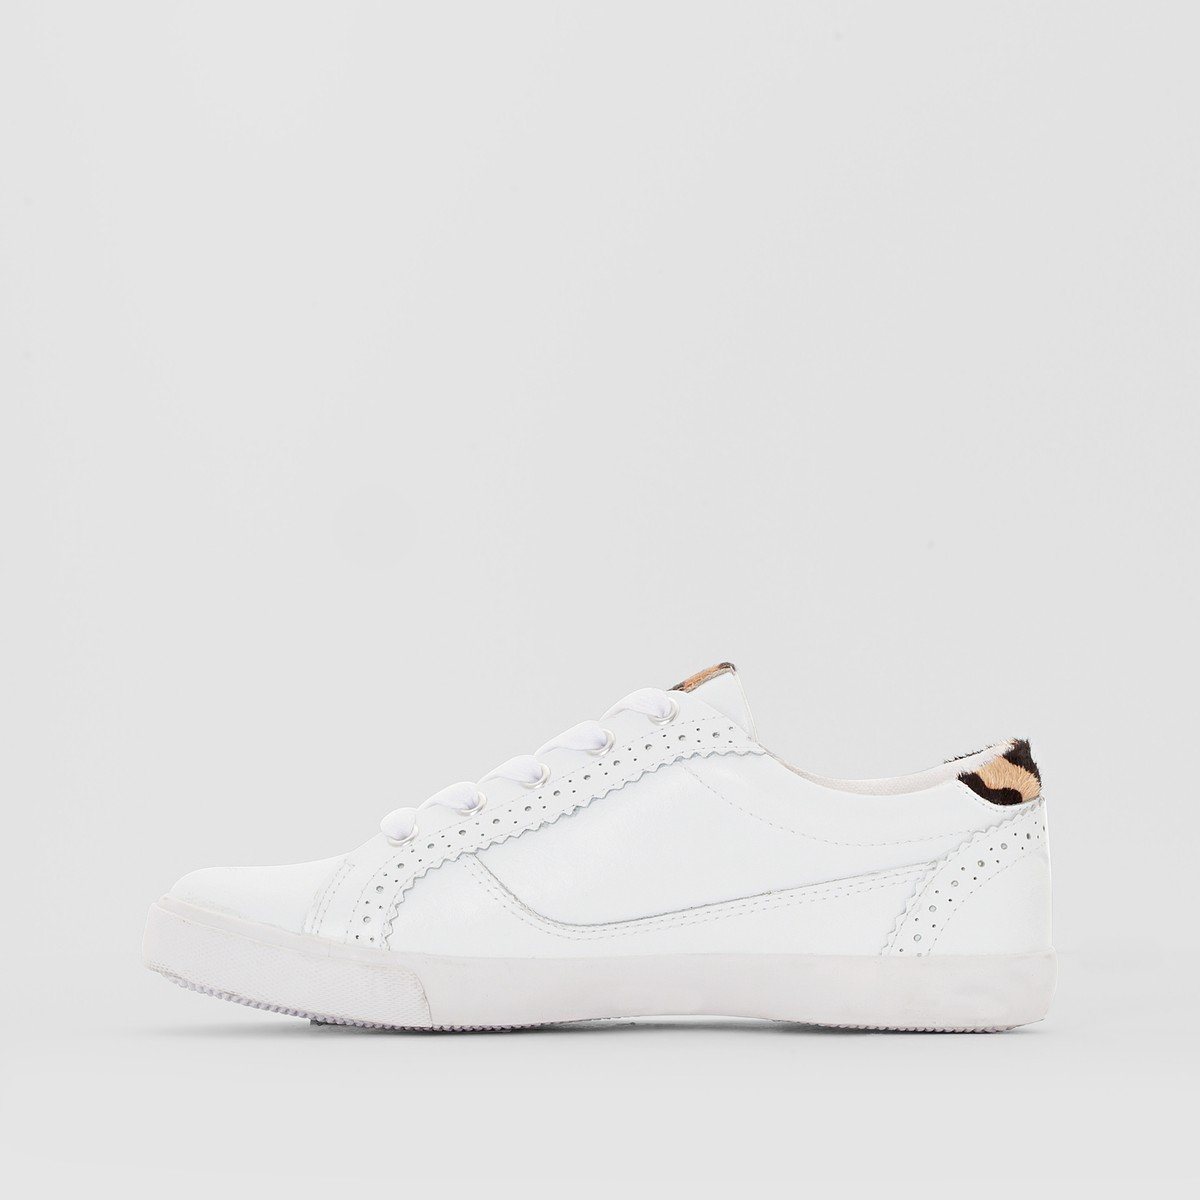 La Redoute Redoute Redoute Collections Donna Baskets Pelle Leopardate Dietro  Bianco 643bc5